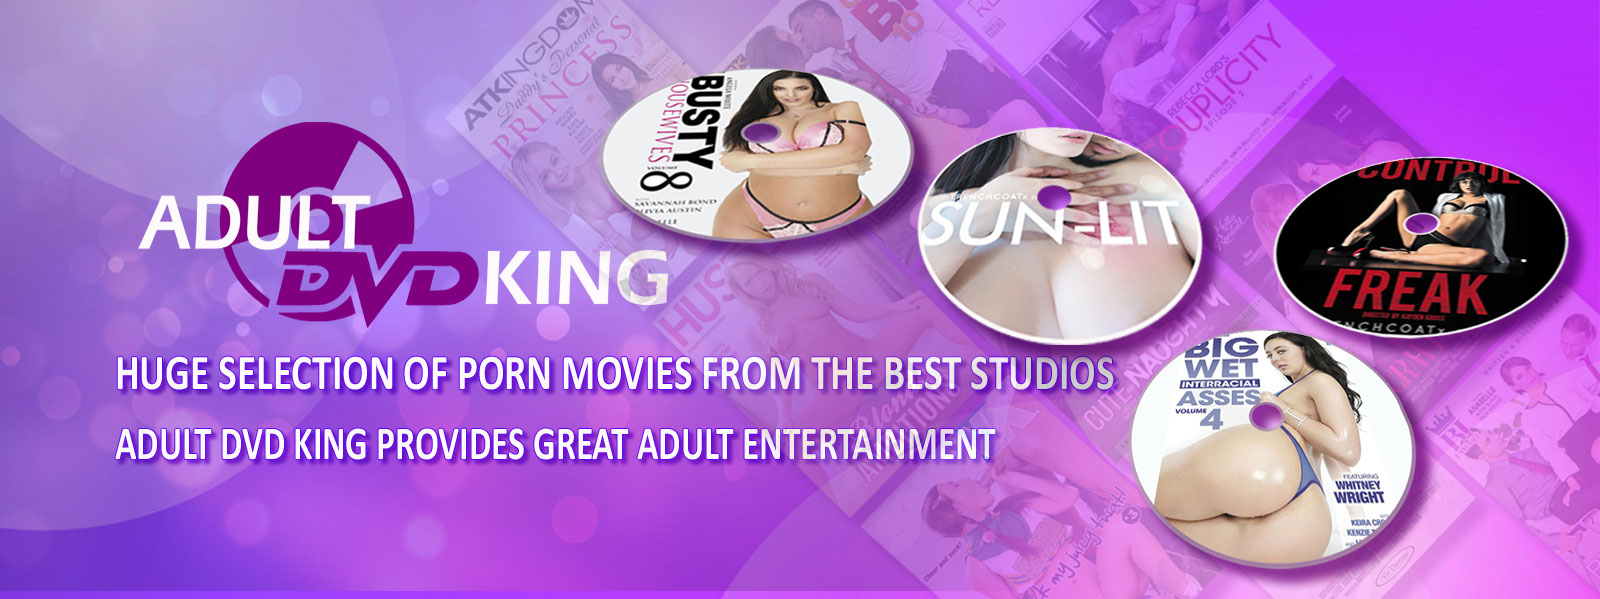 Huge selection of porn movies from the best studios - Adult DVD King provides great adult entertainment